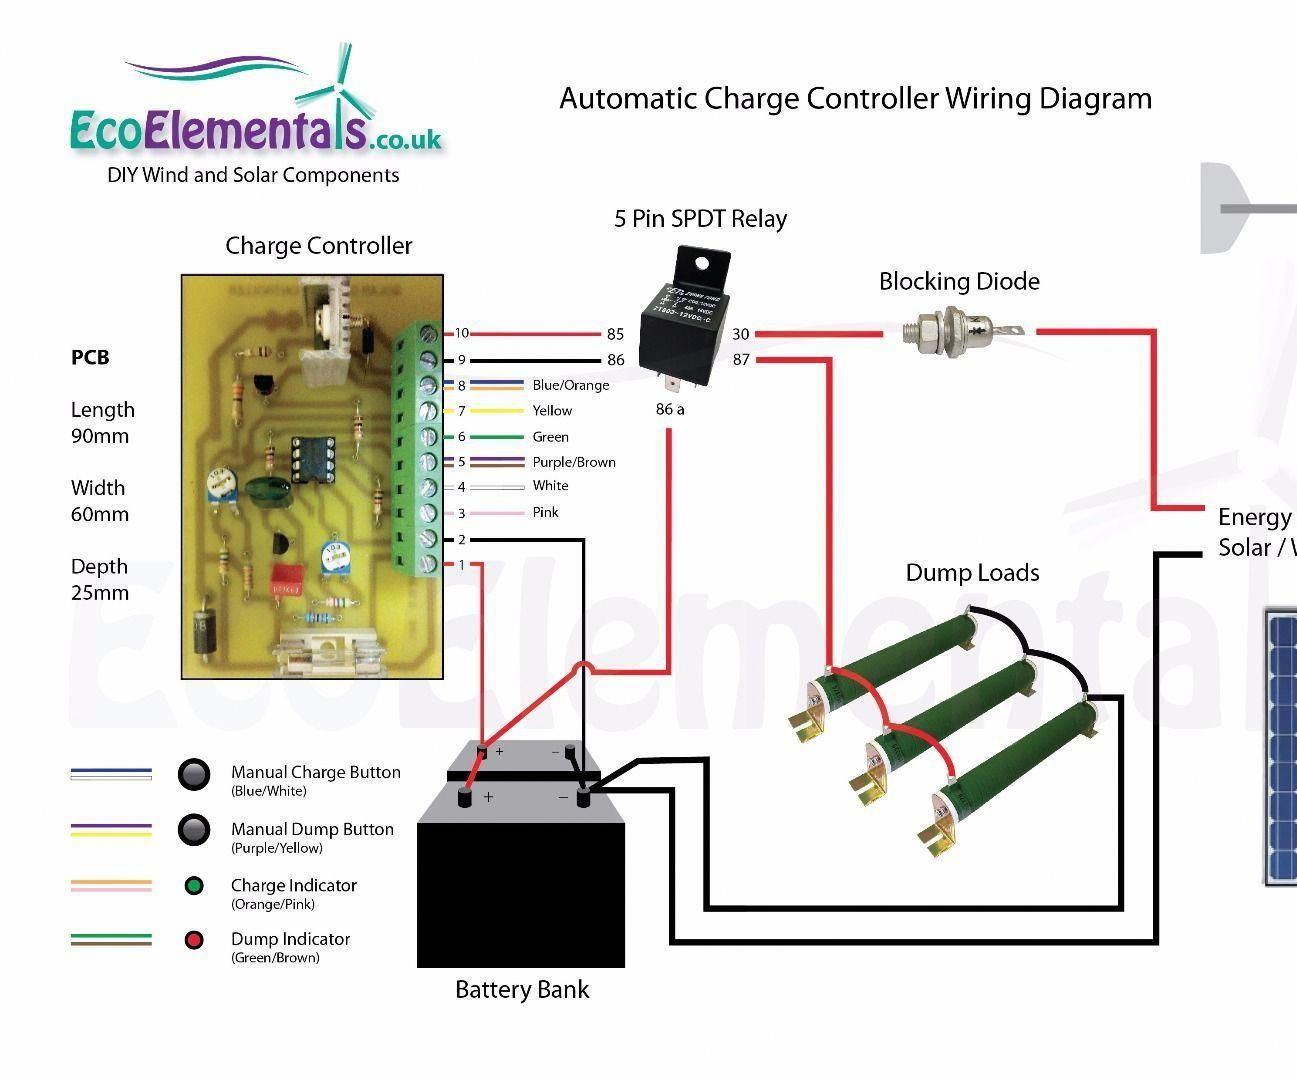 small resolution of charge controller wiring diagram for diy wind turbine or solar panels solarpanels